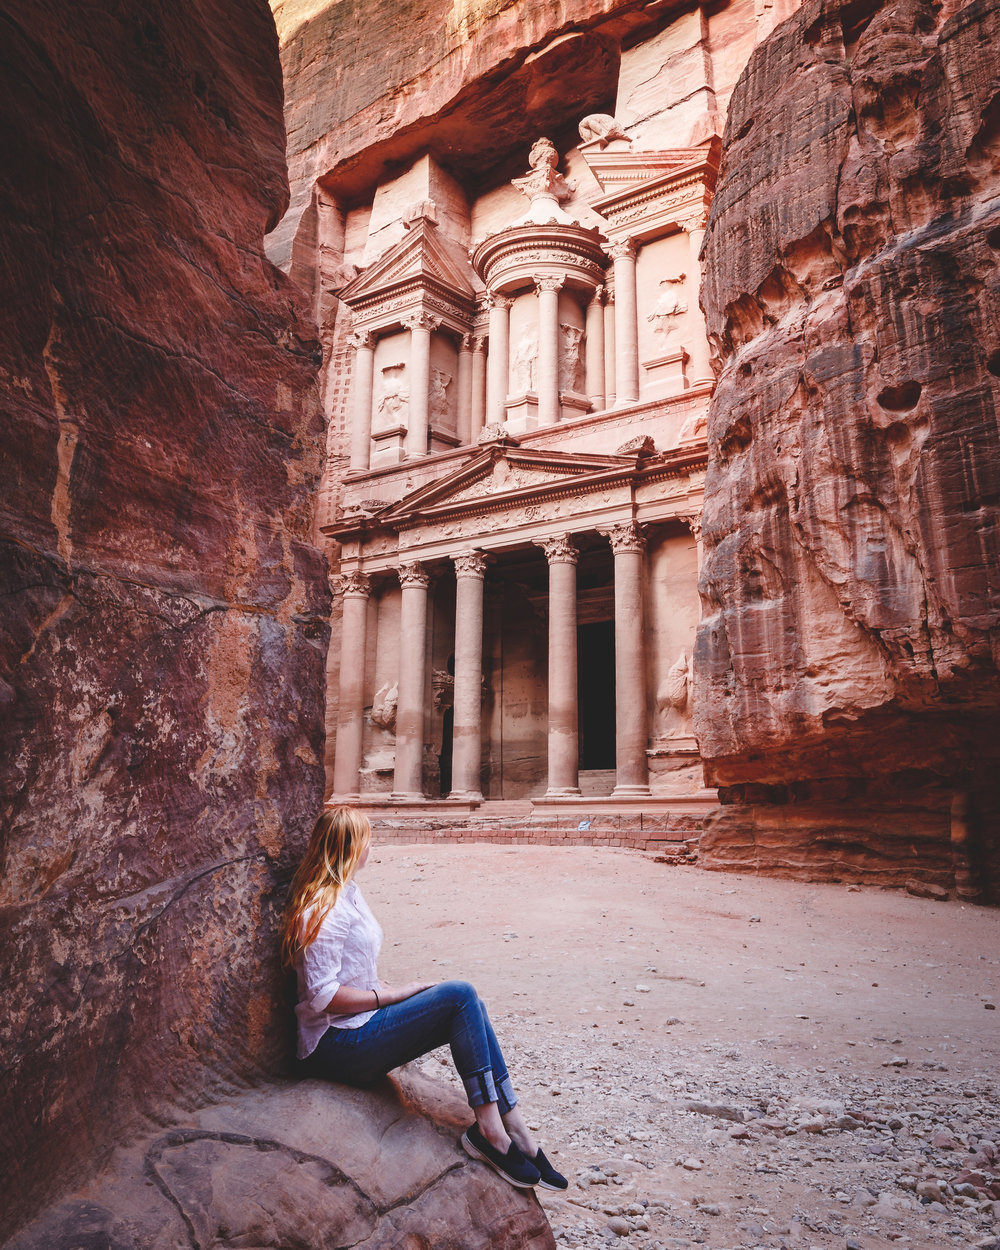 Instagrammable spots in Jordan - The ledge by the Treasury, Petra